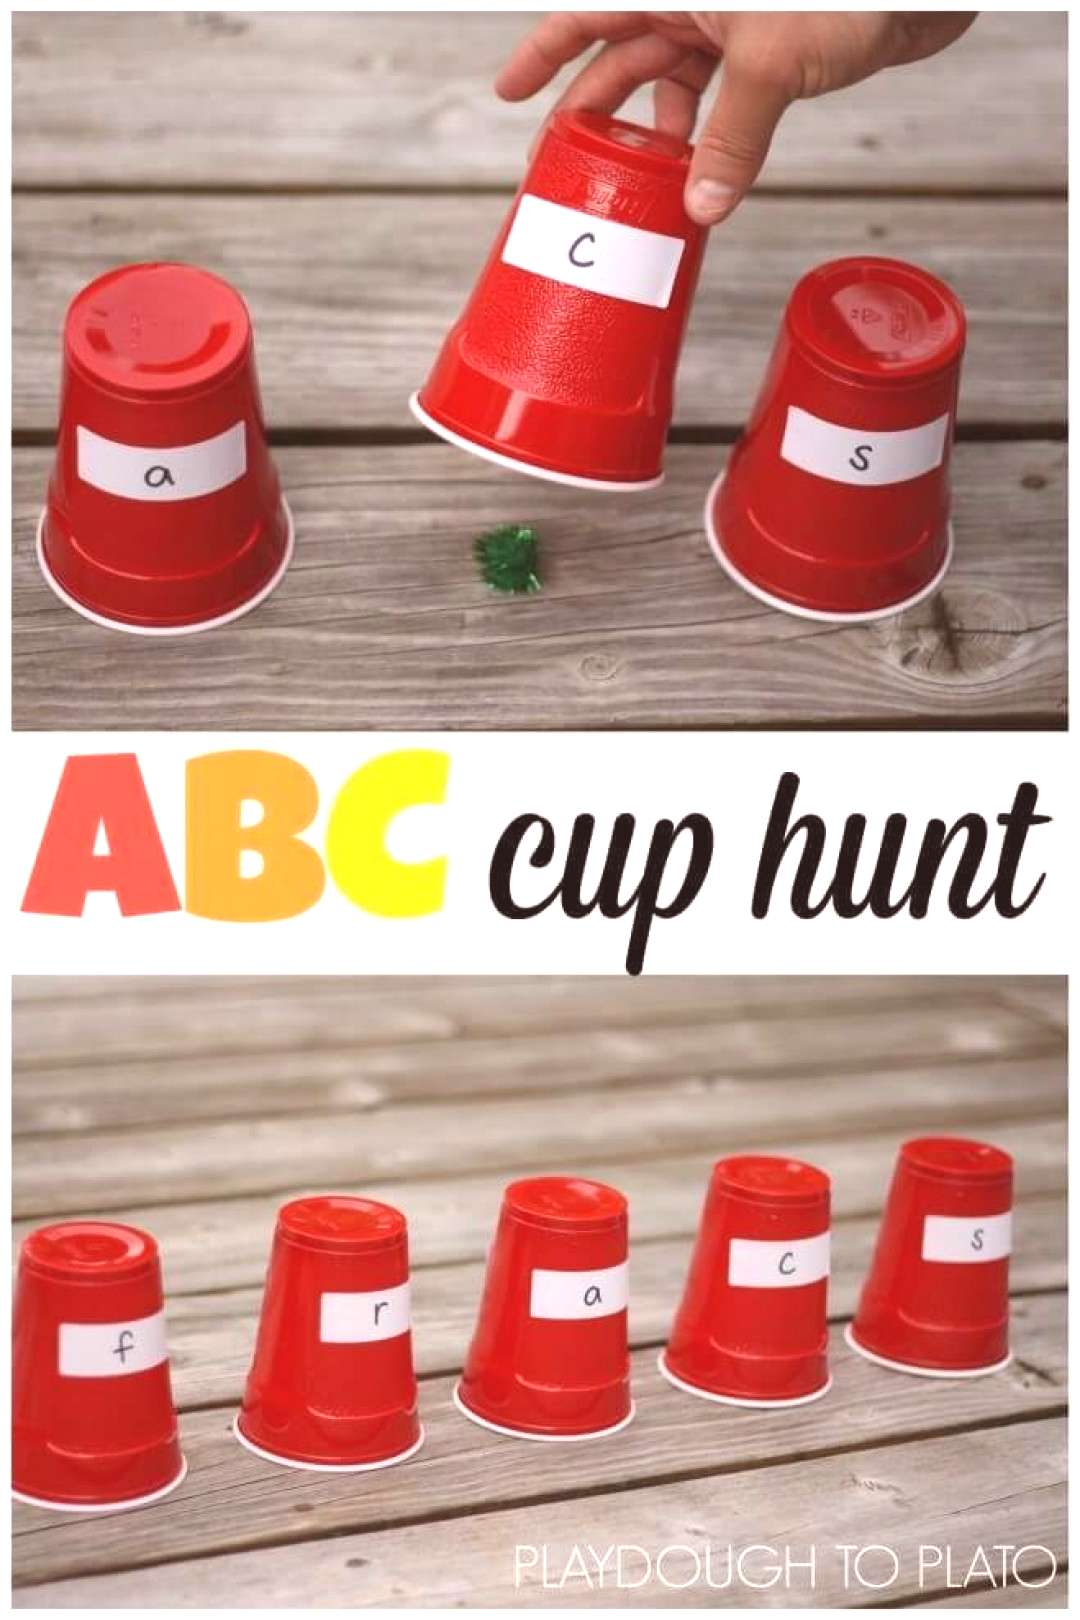 ABC Cup Hunt - a fun way for preschoolers to work on letter recognition!